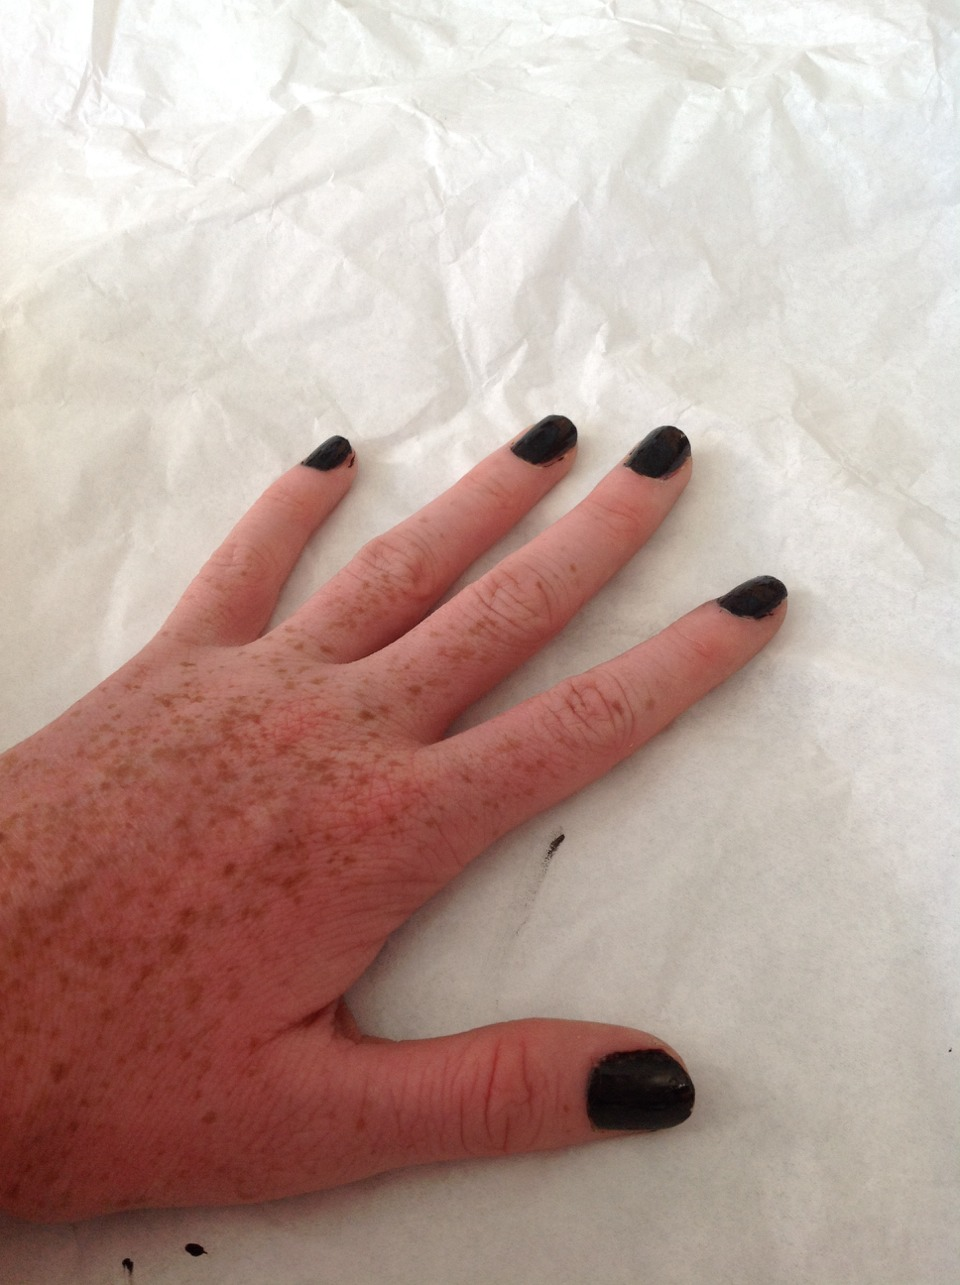 Begin by painting your nails black